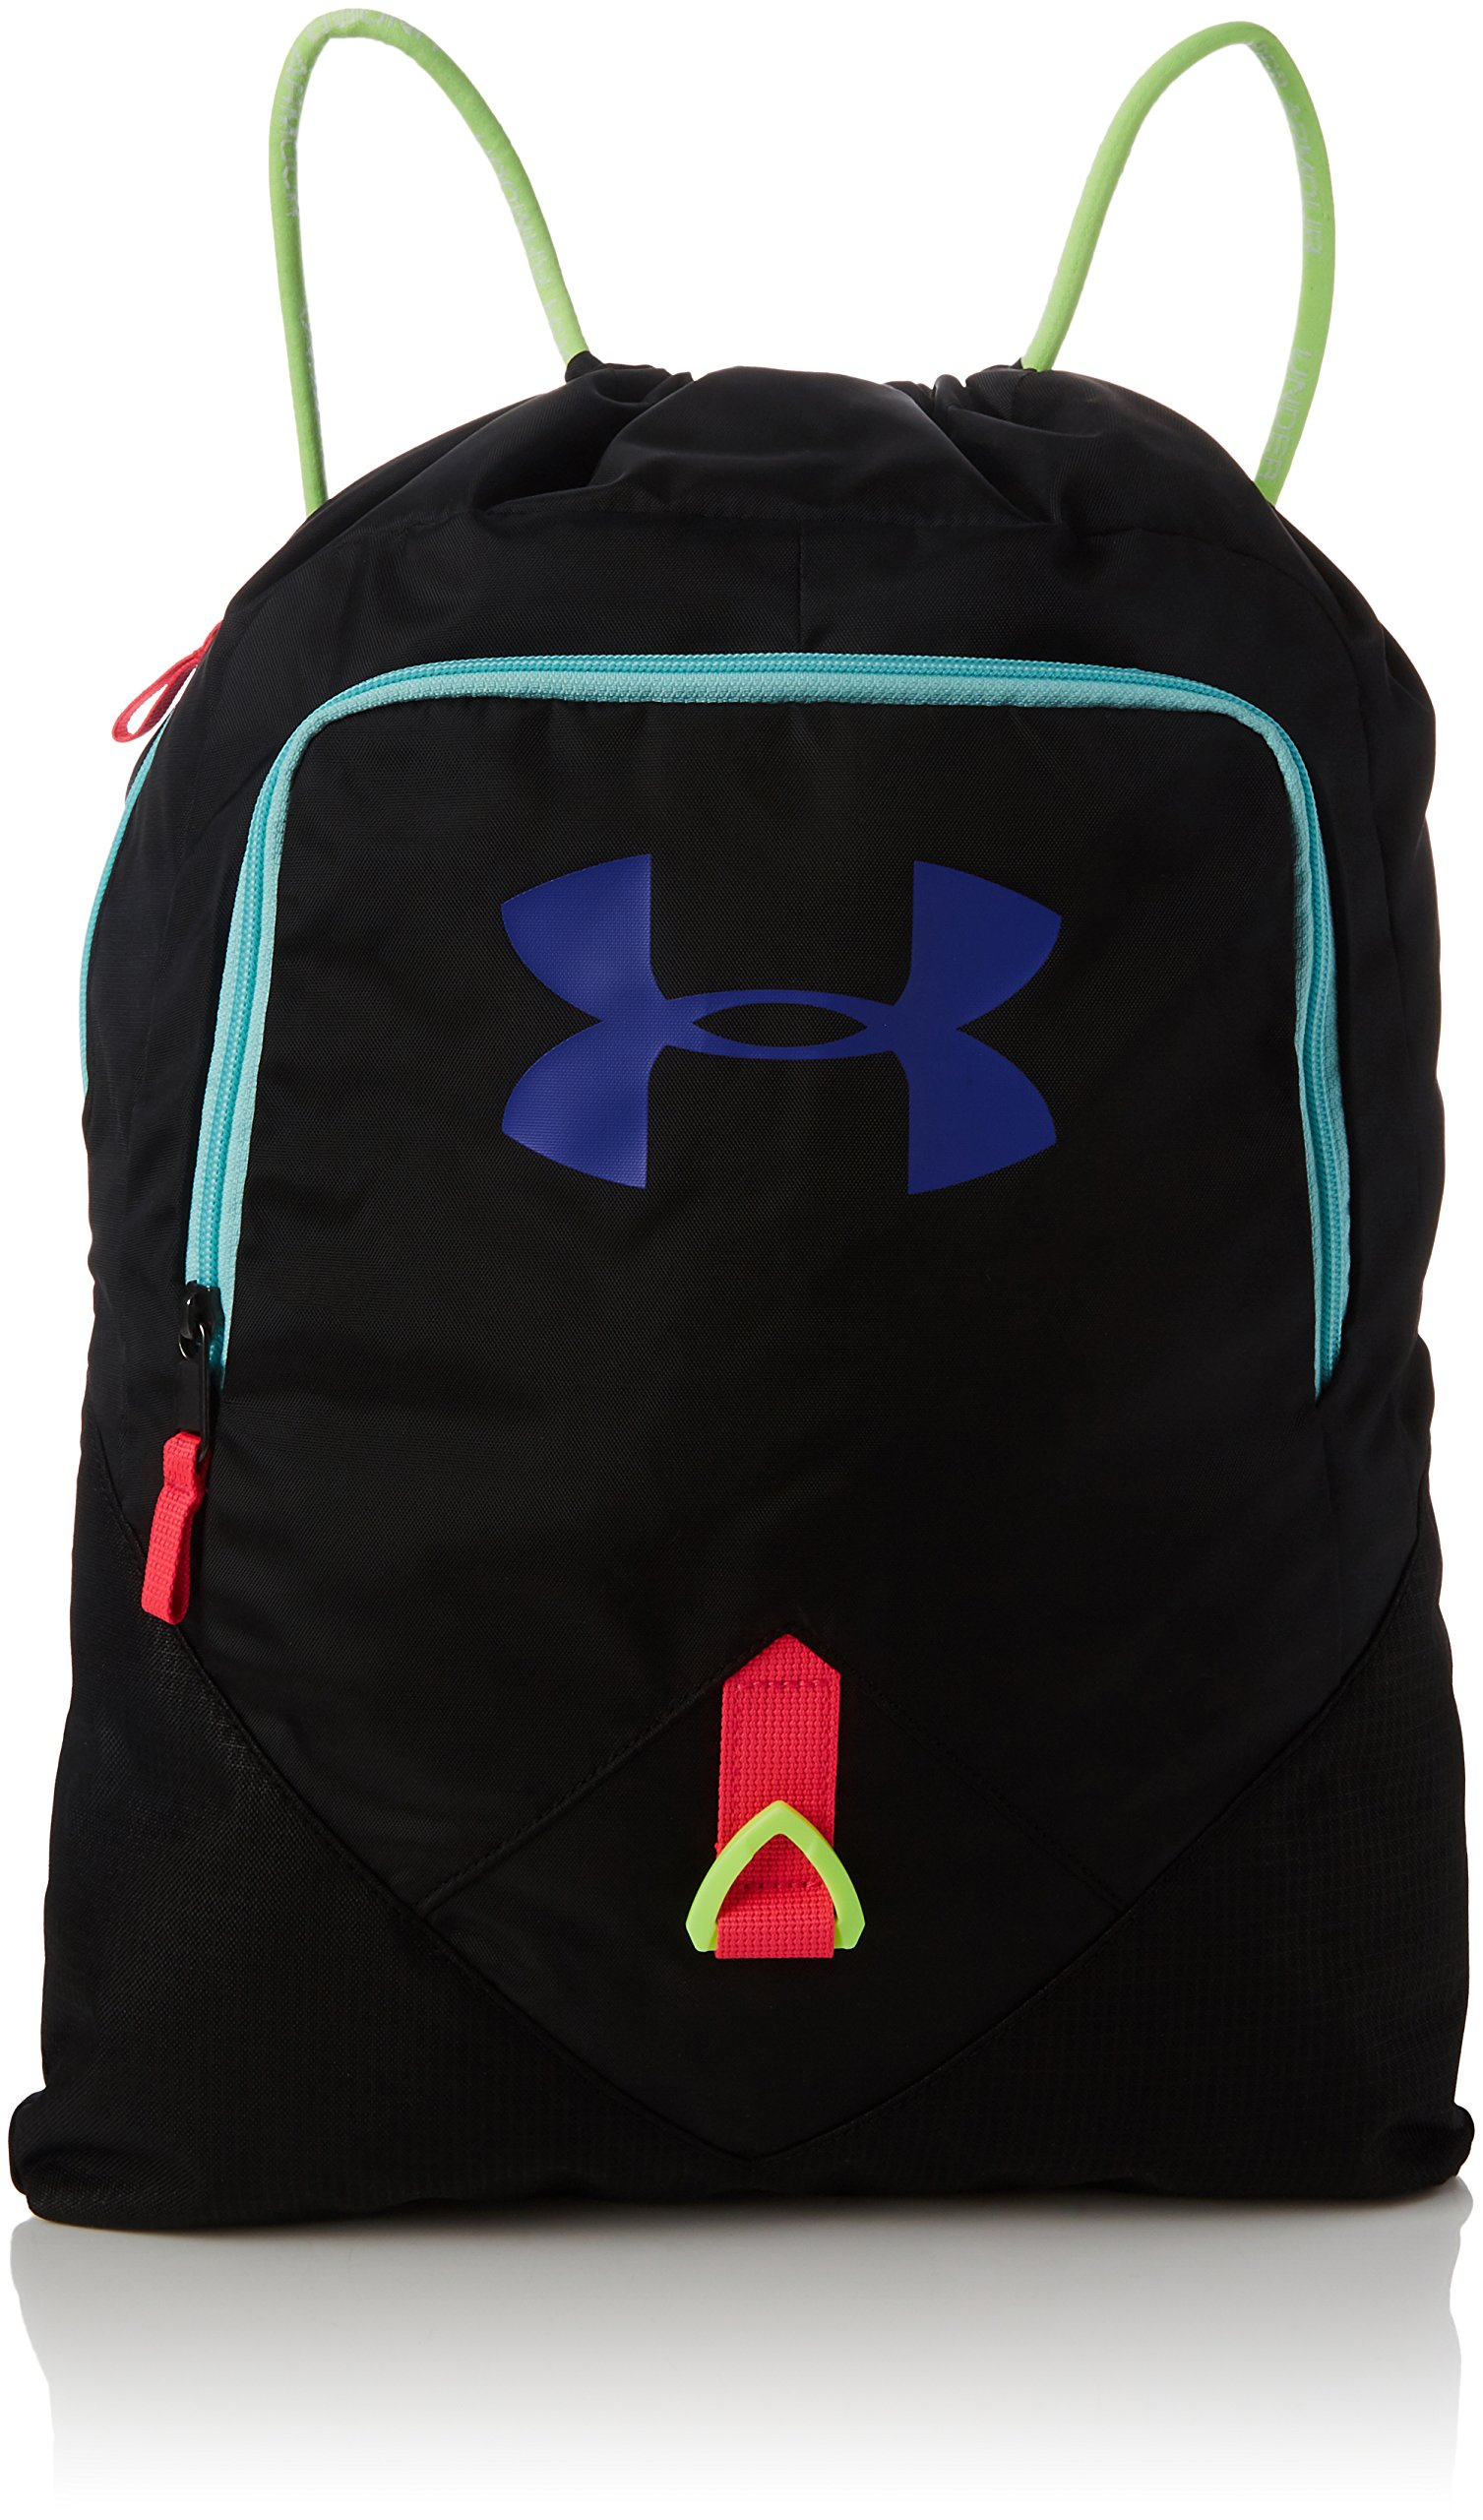 Under Armour Unisex UA Undeniable Sackpack Black/Constellation Purple/Quirky Lime Duffel